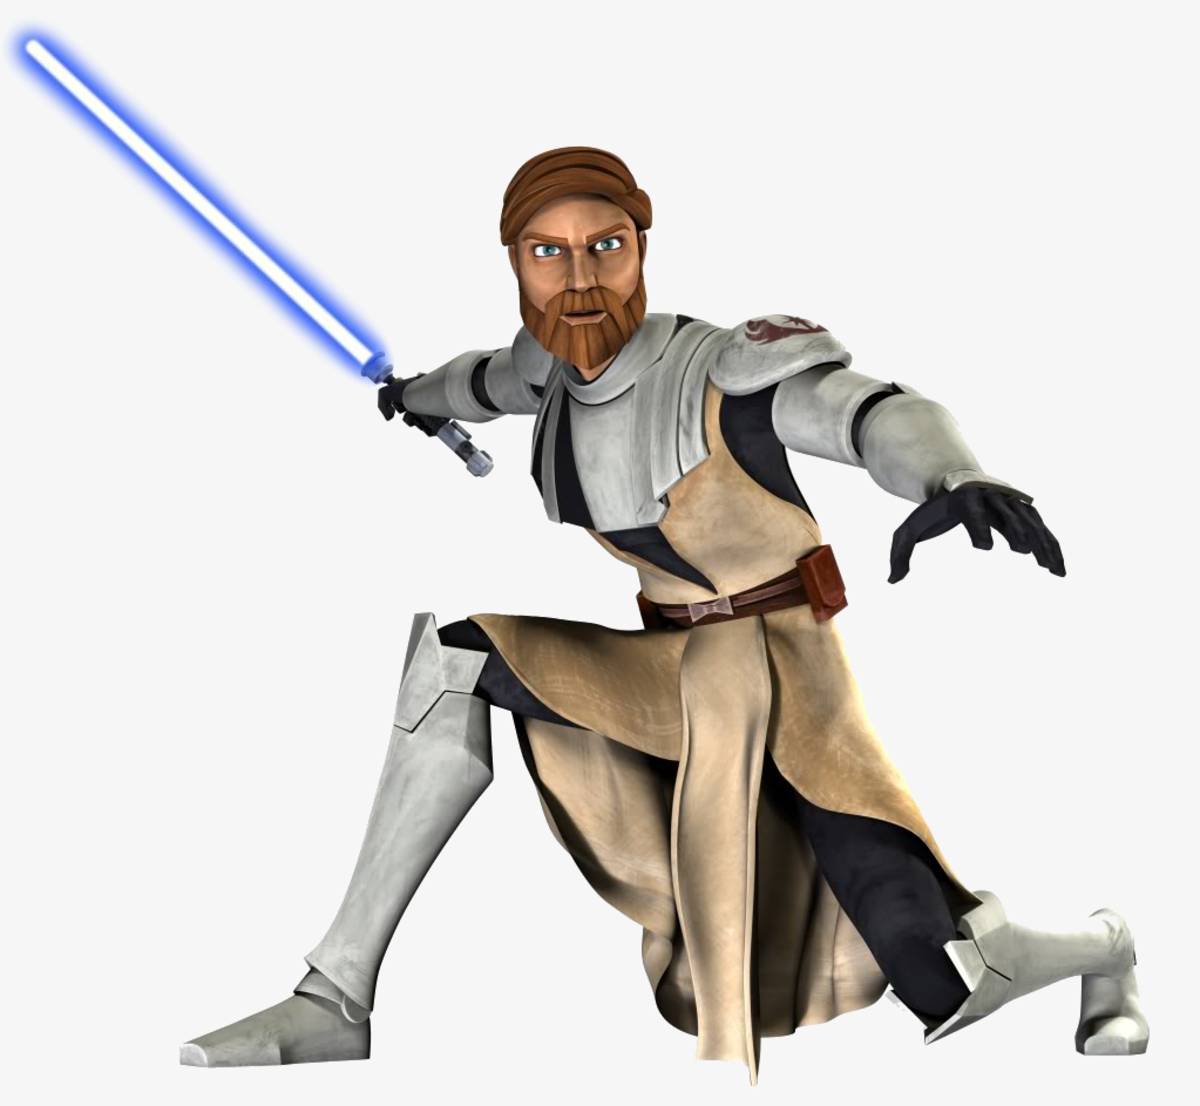 General Kenobi in the Clone Wars